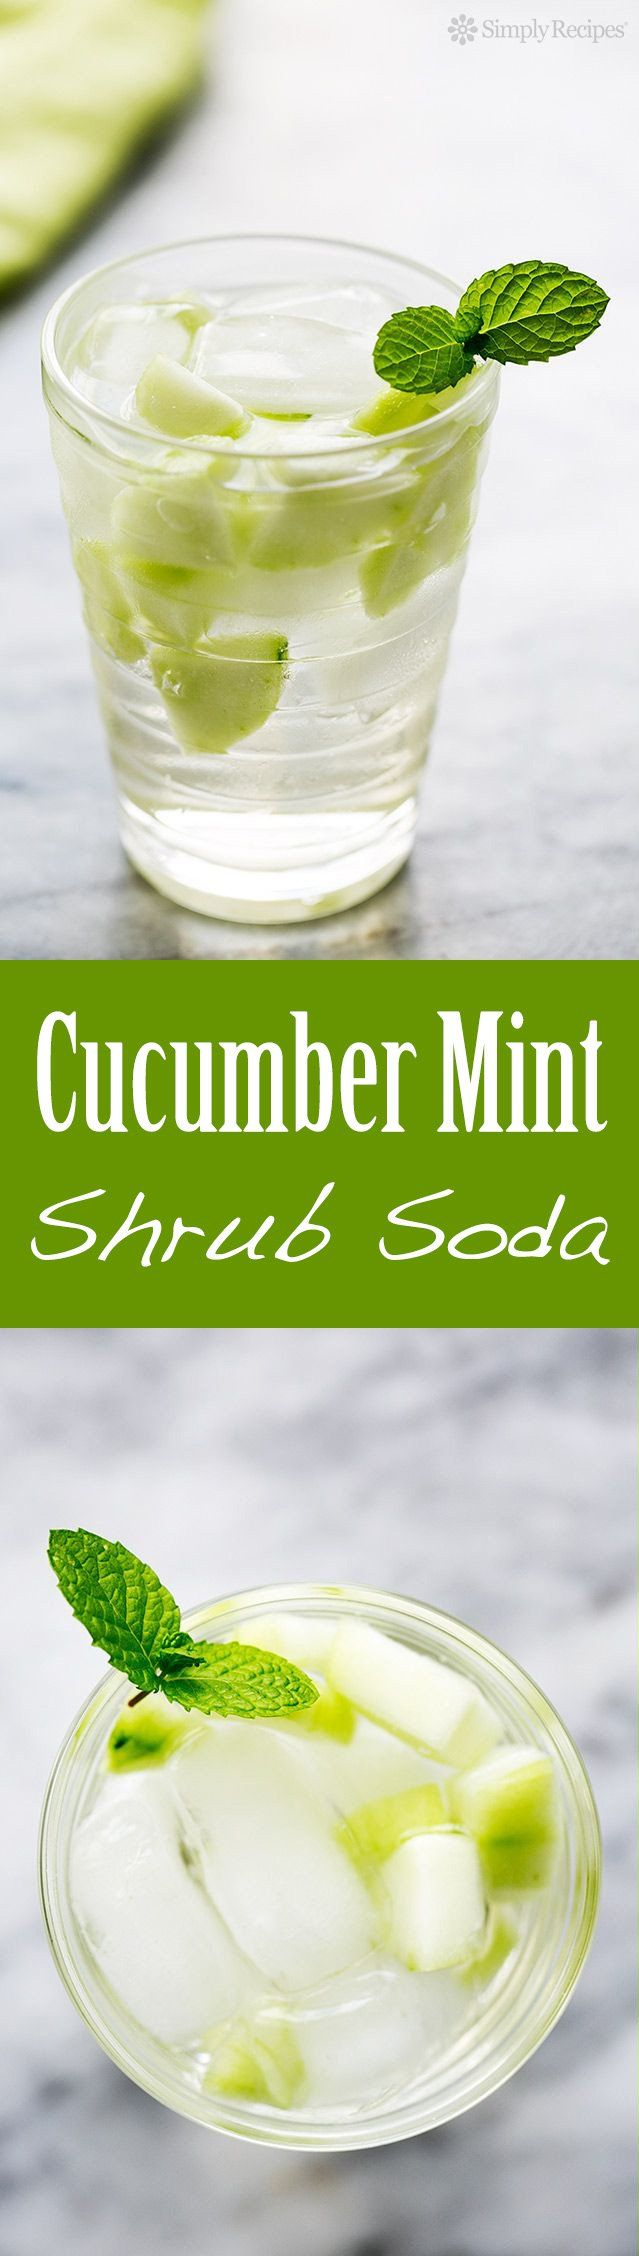 "Cucumber Mint ""Shrub"" Soda ~ Cool refreshing homemade cucumber mint vinegar-based soda, tangy and sweet! Perfect for a hot summer day. ~ SimplyRecipes.com"